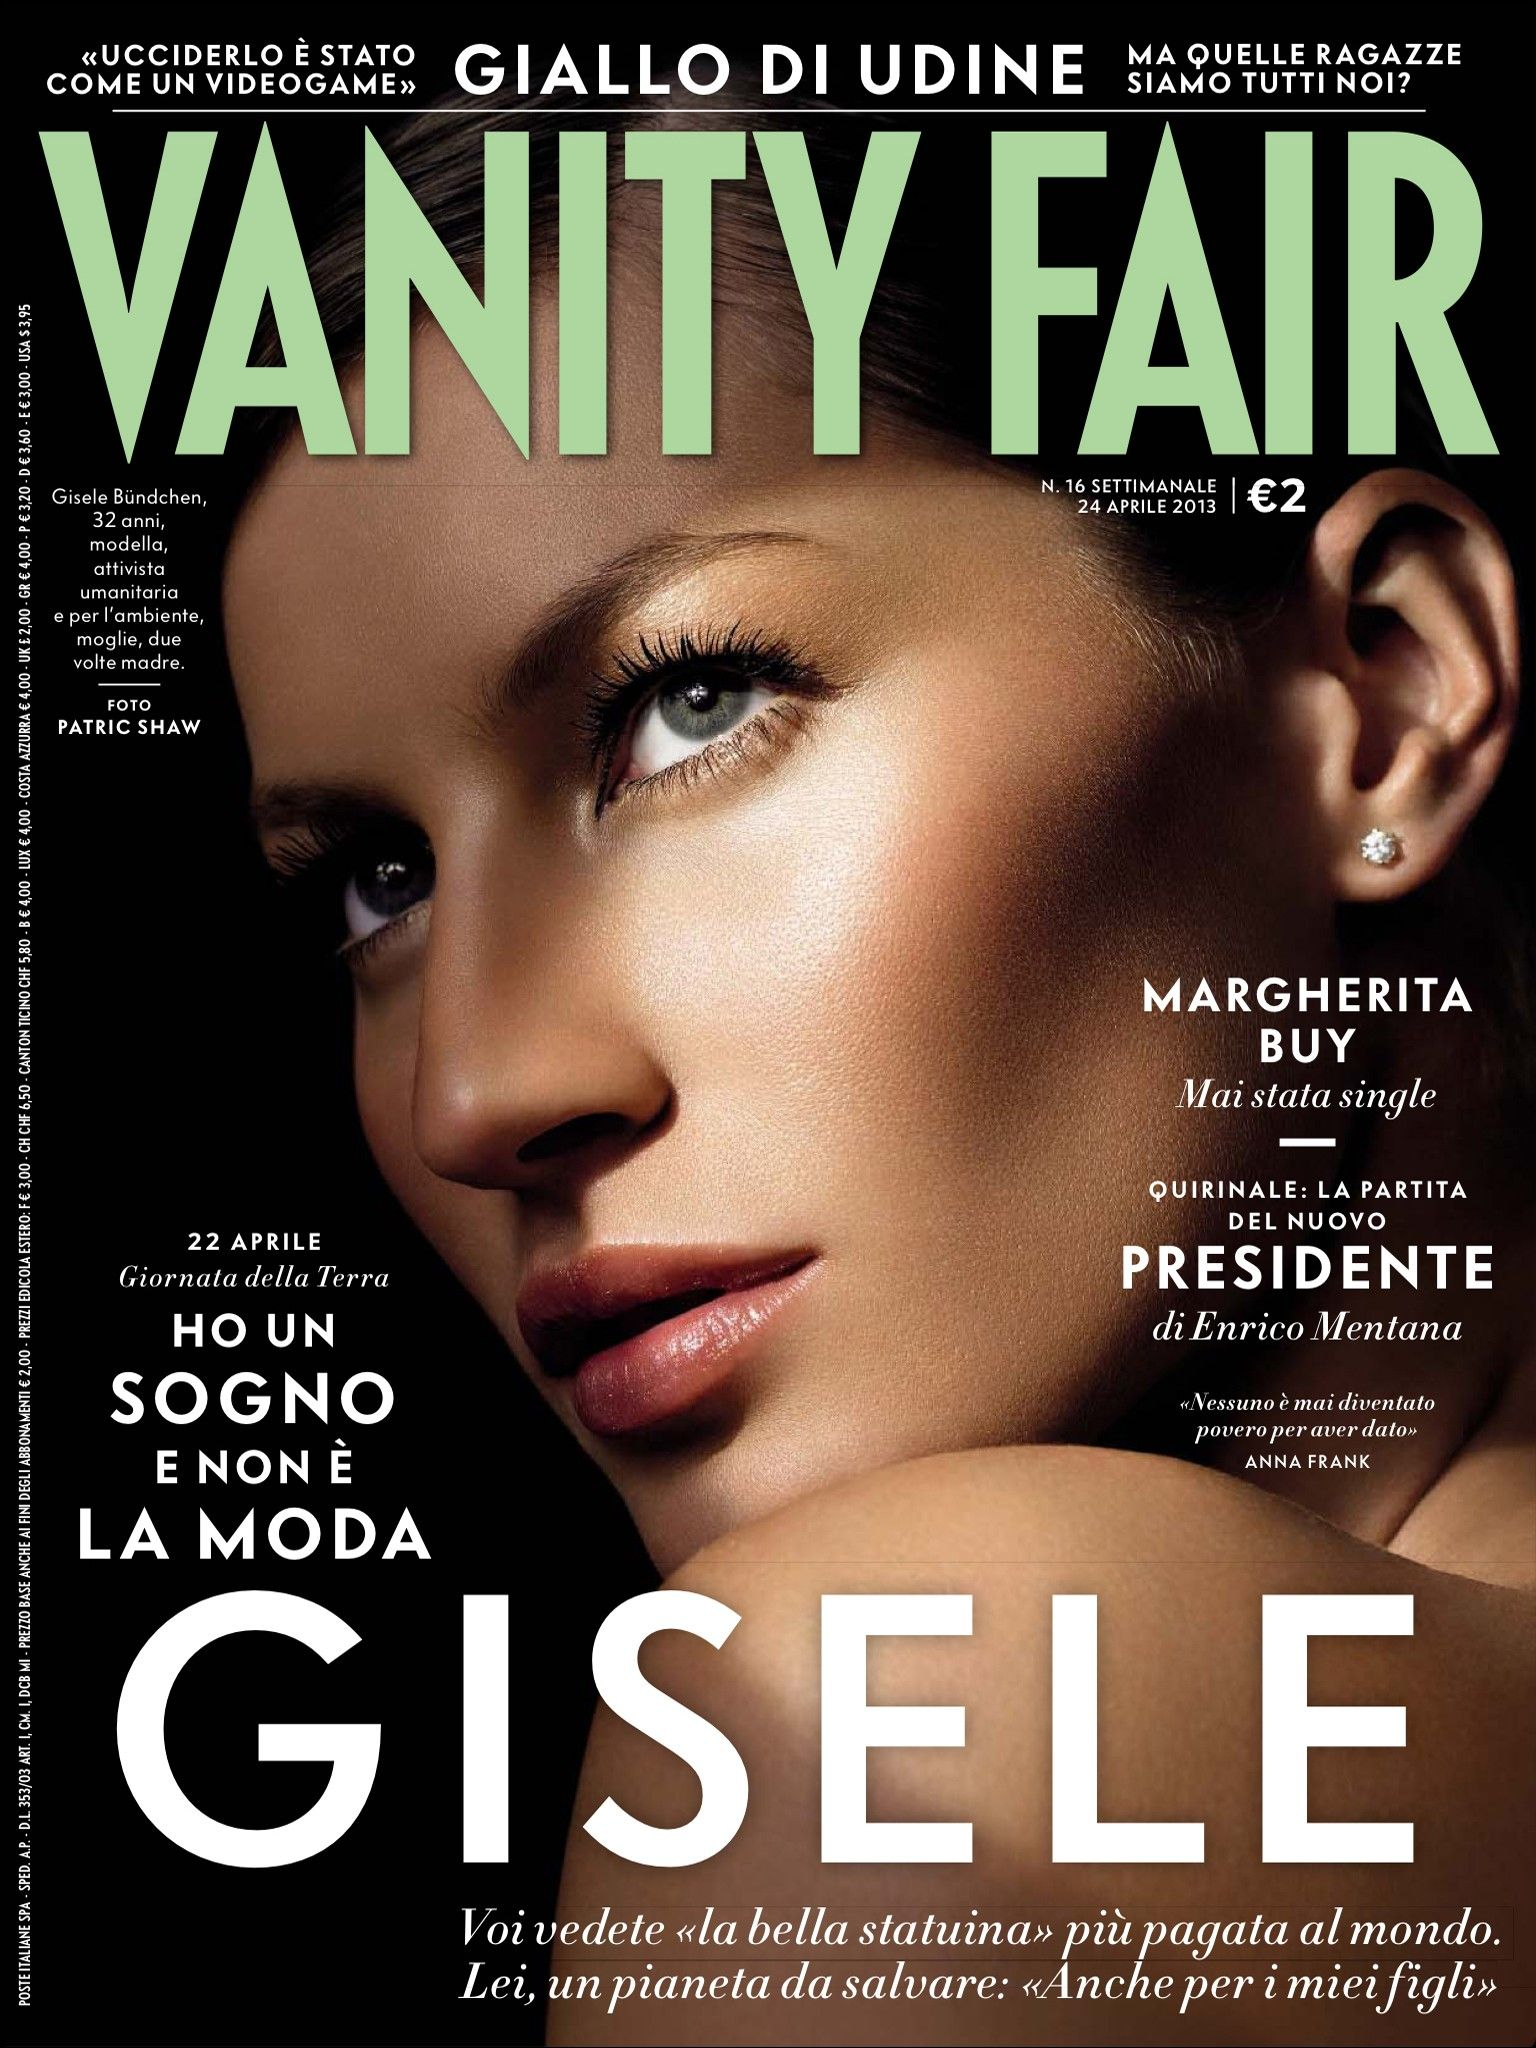 fashion_scans_remastered-gisele_bundchen-vanity_fair_italia-april_2013_16-scanned_by_vampirehorde-hq-1